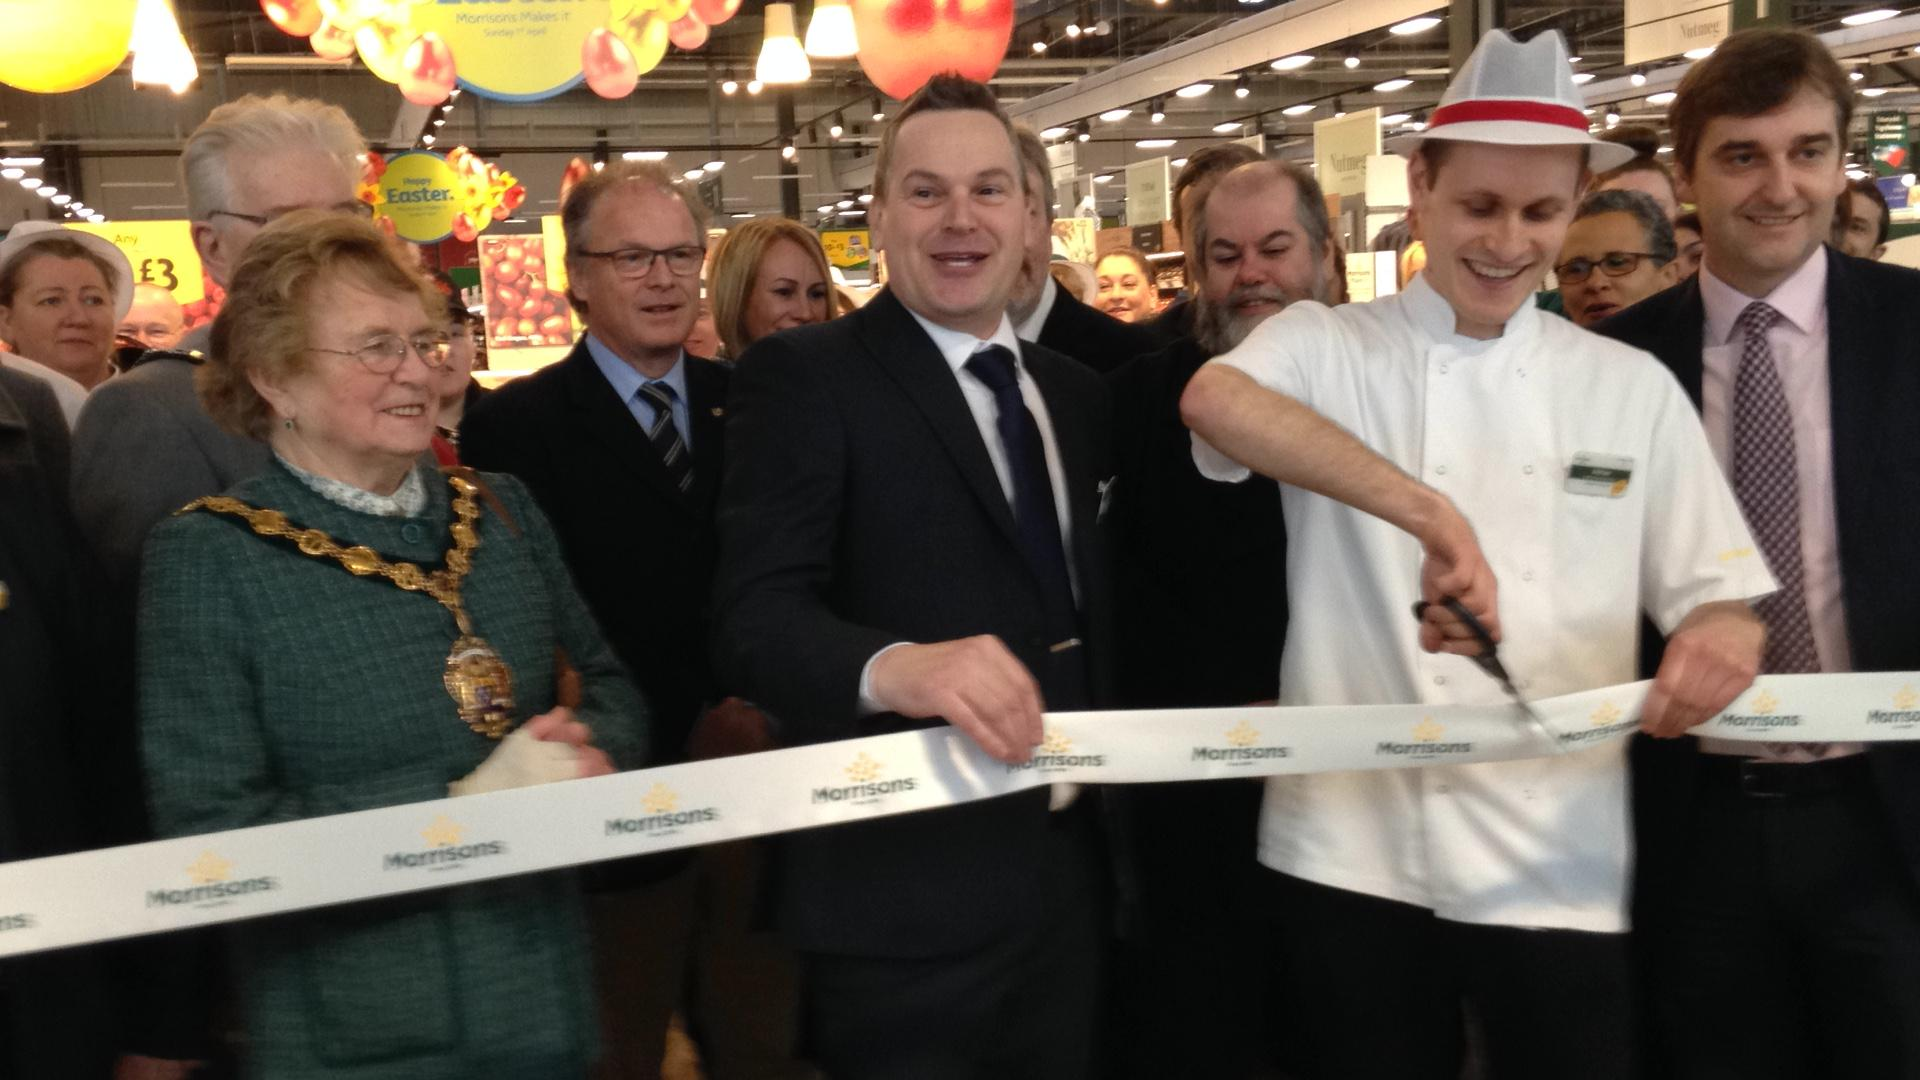 WATCH: Morrisons finally opens long-awaited store in Abergavenny